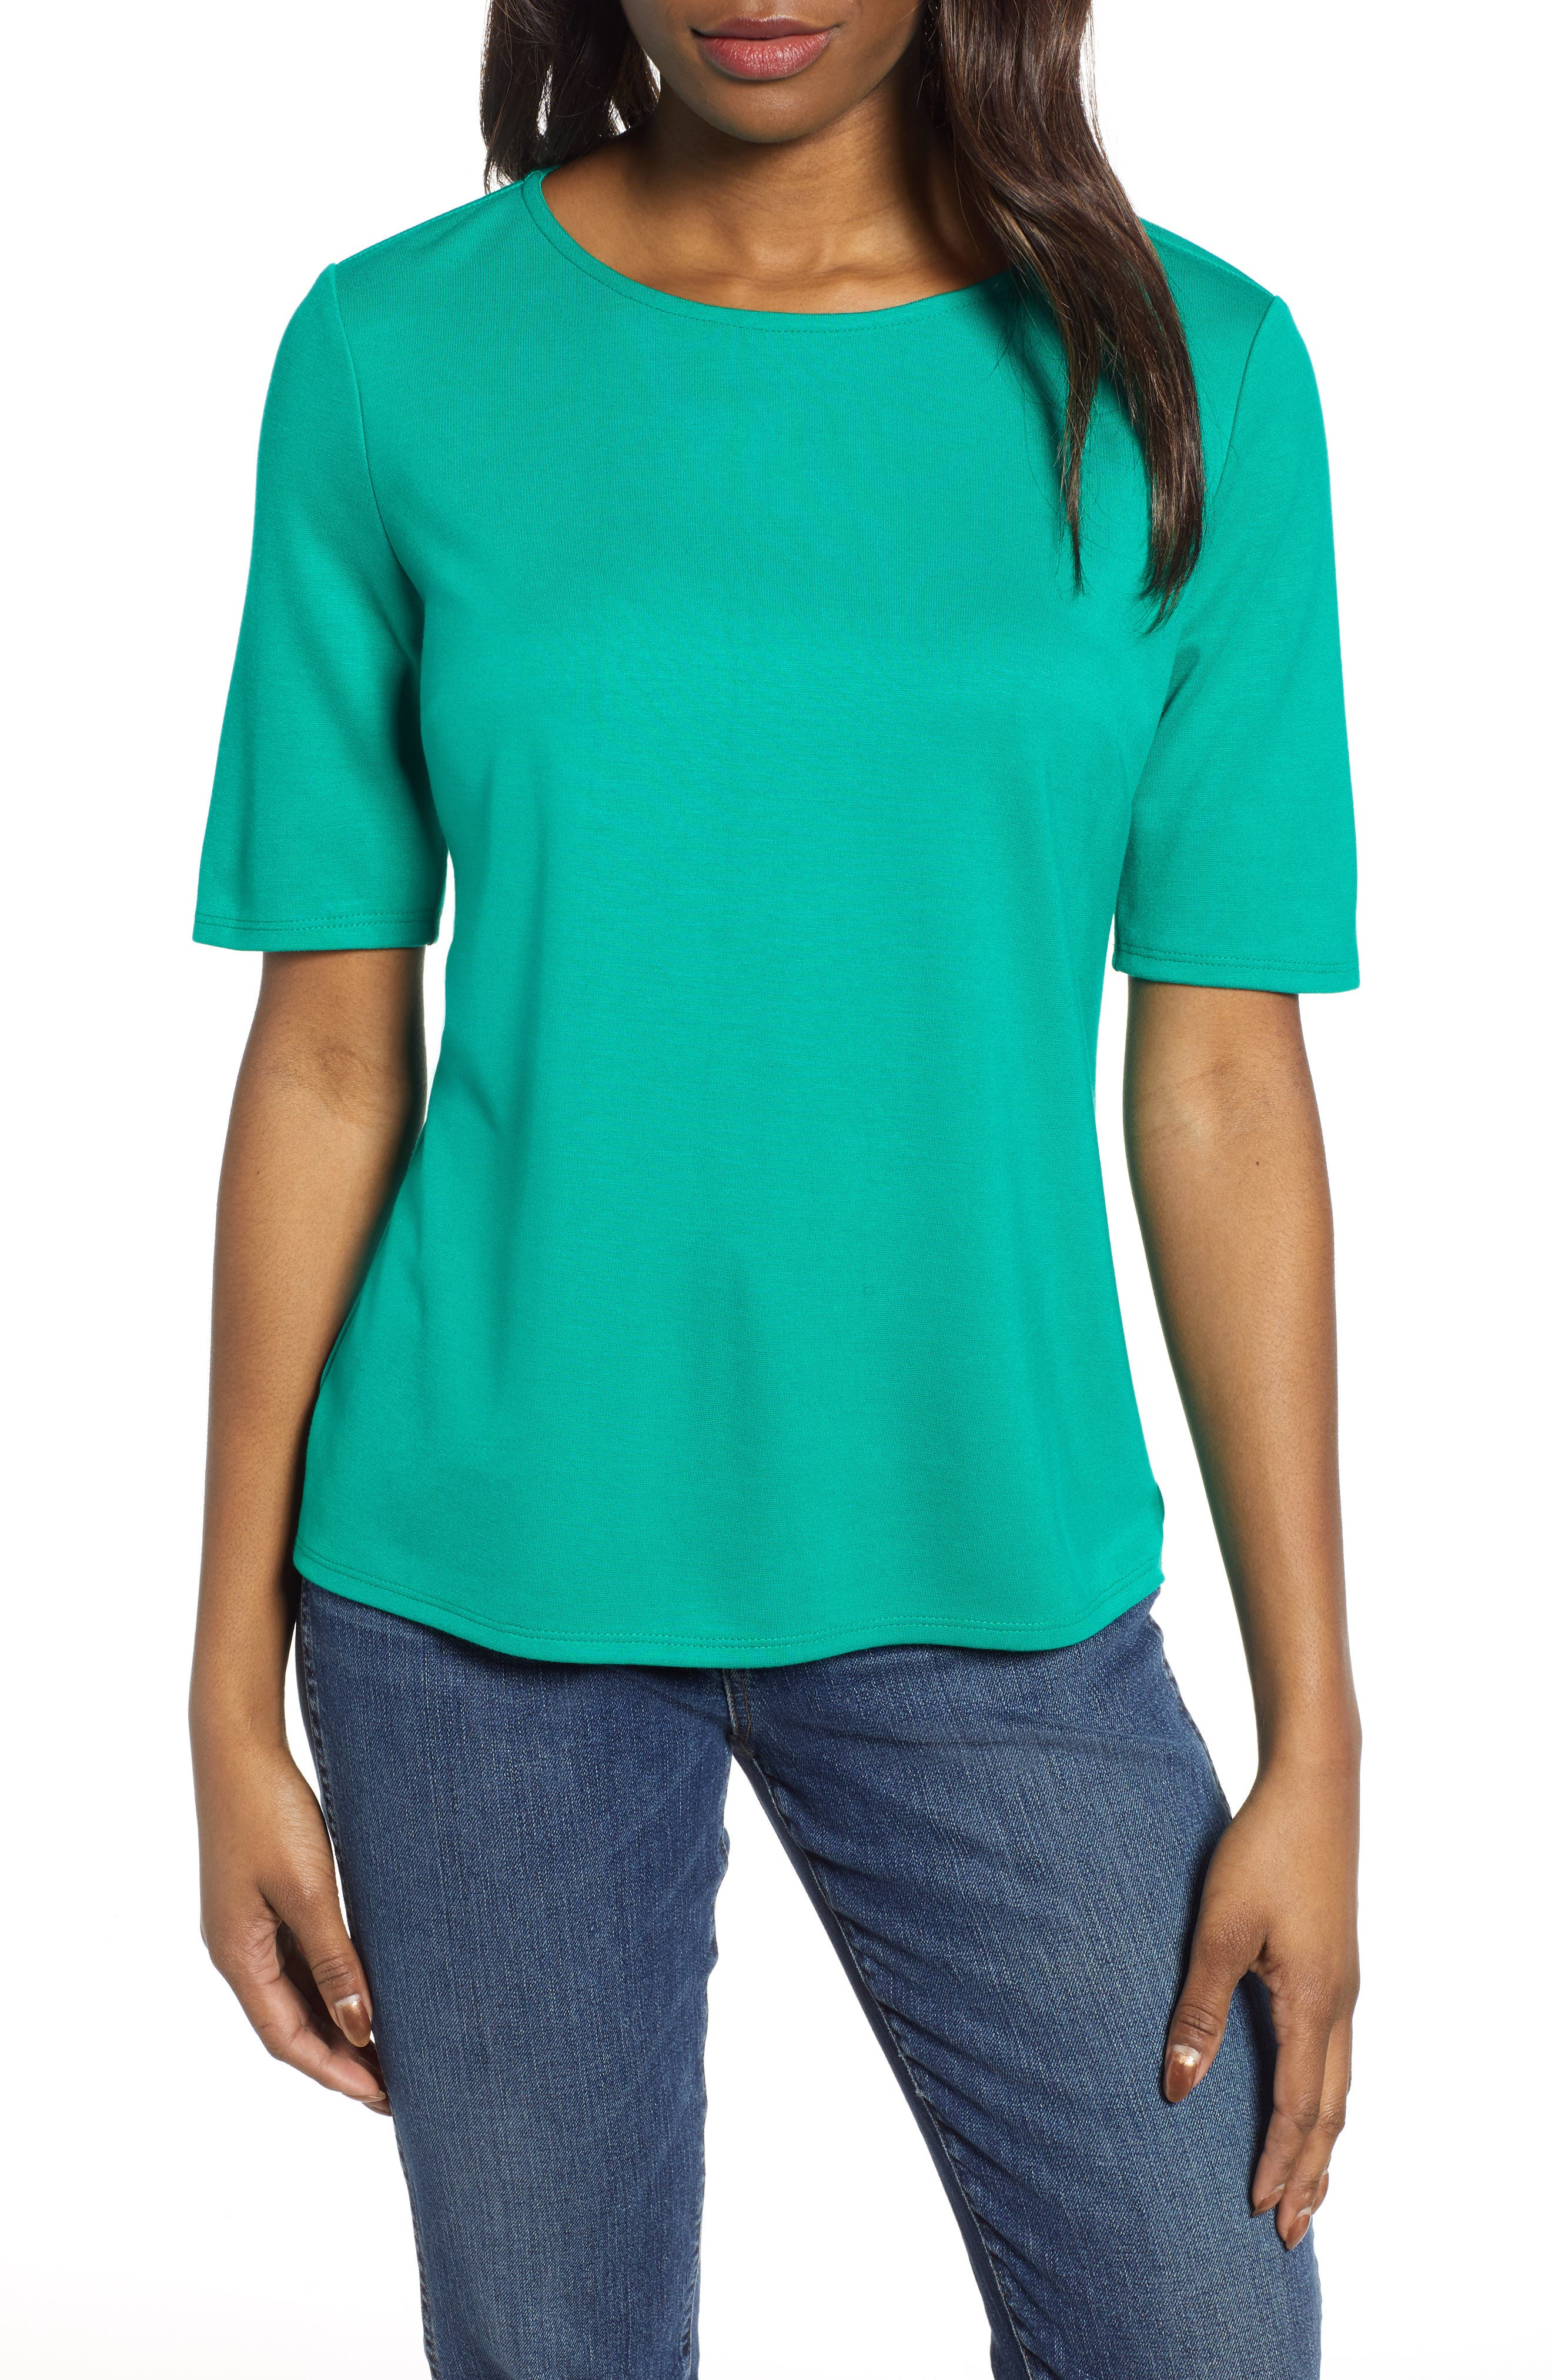 GIBSON x International Women's Day Thamarr Keyhole Tie Back Ponte Top, Main, color, GREEN